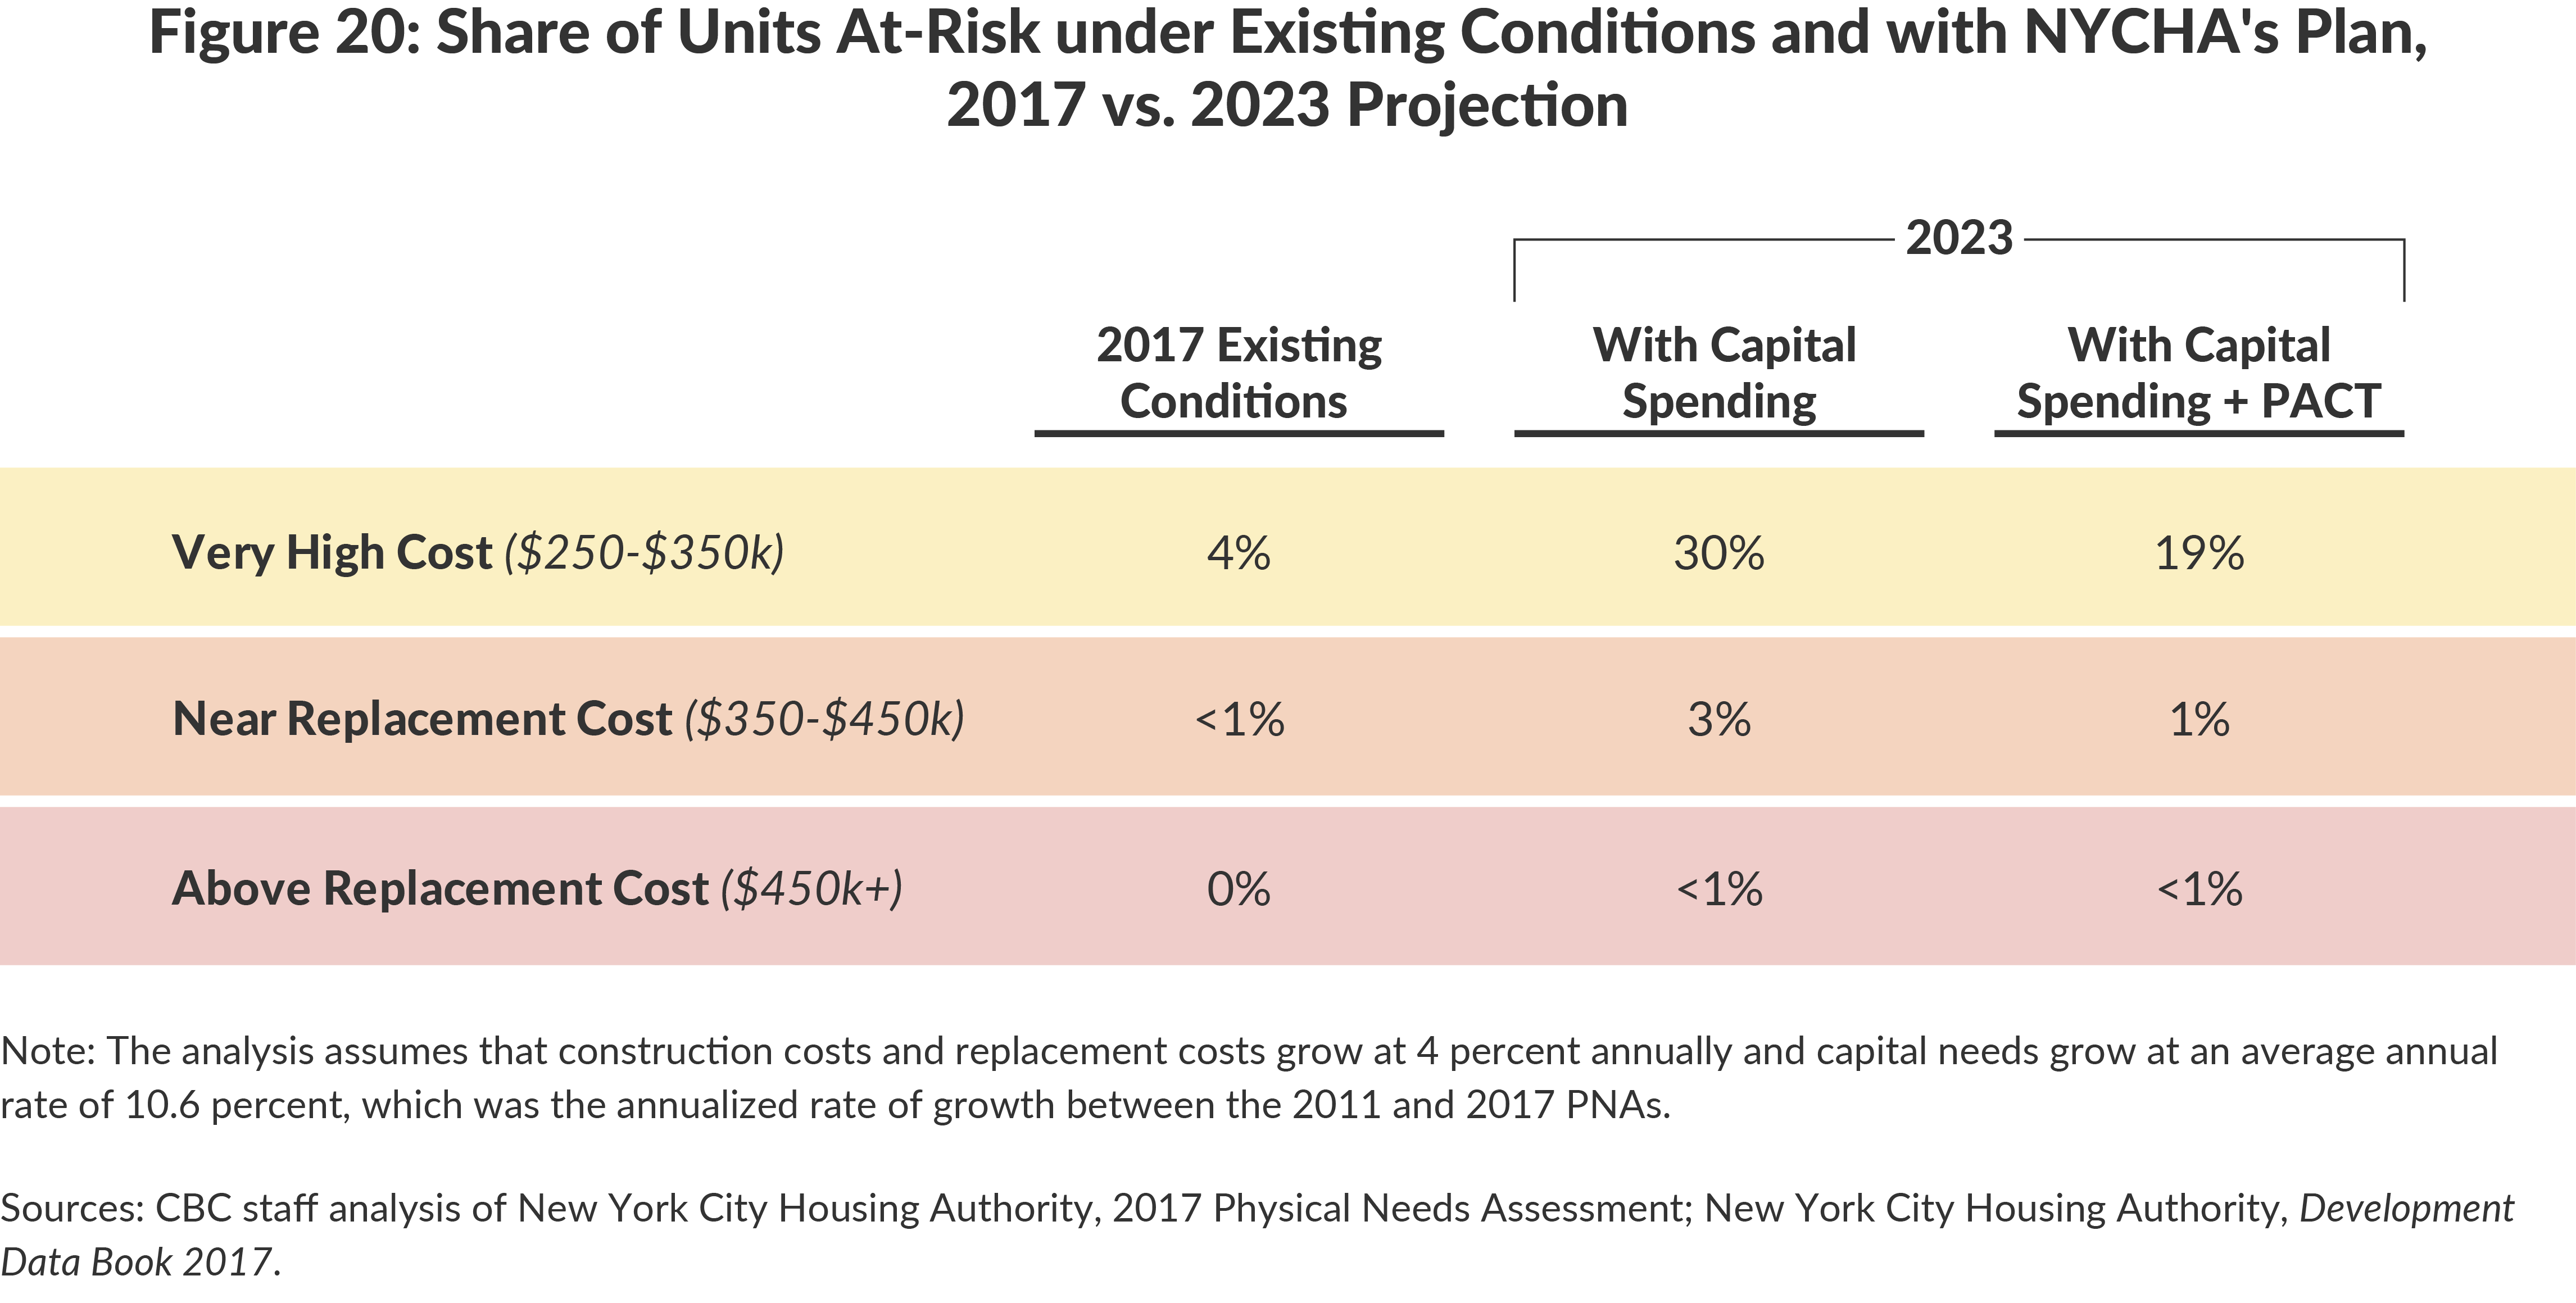 Figure 20: Share of Units At-Risk under Existing Conditions and with NYCHA's Plan,2017 vs. 2023 Projection